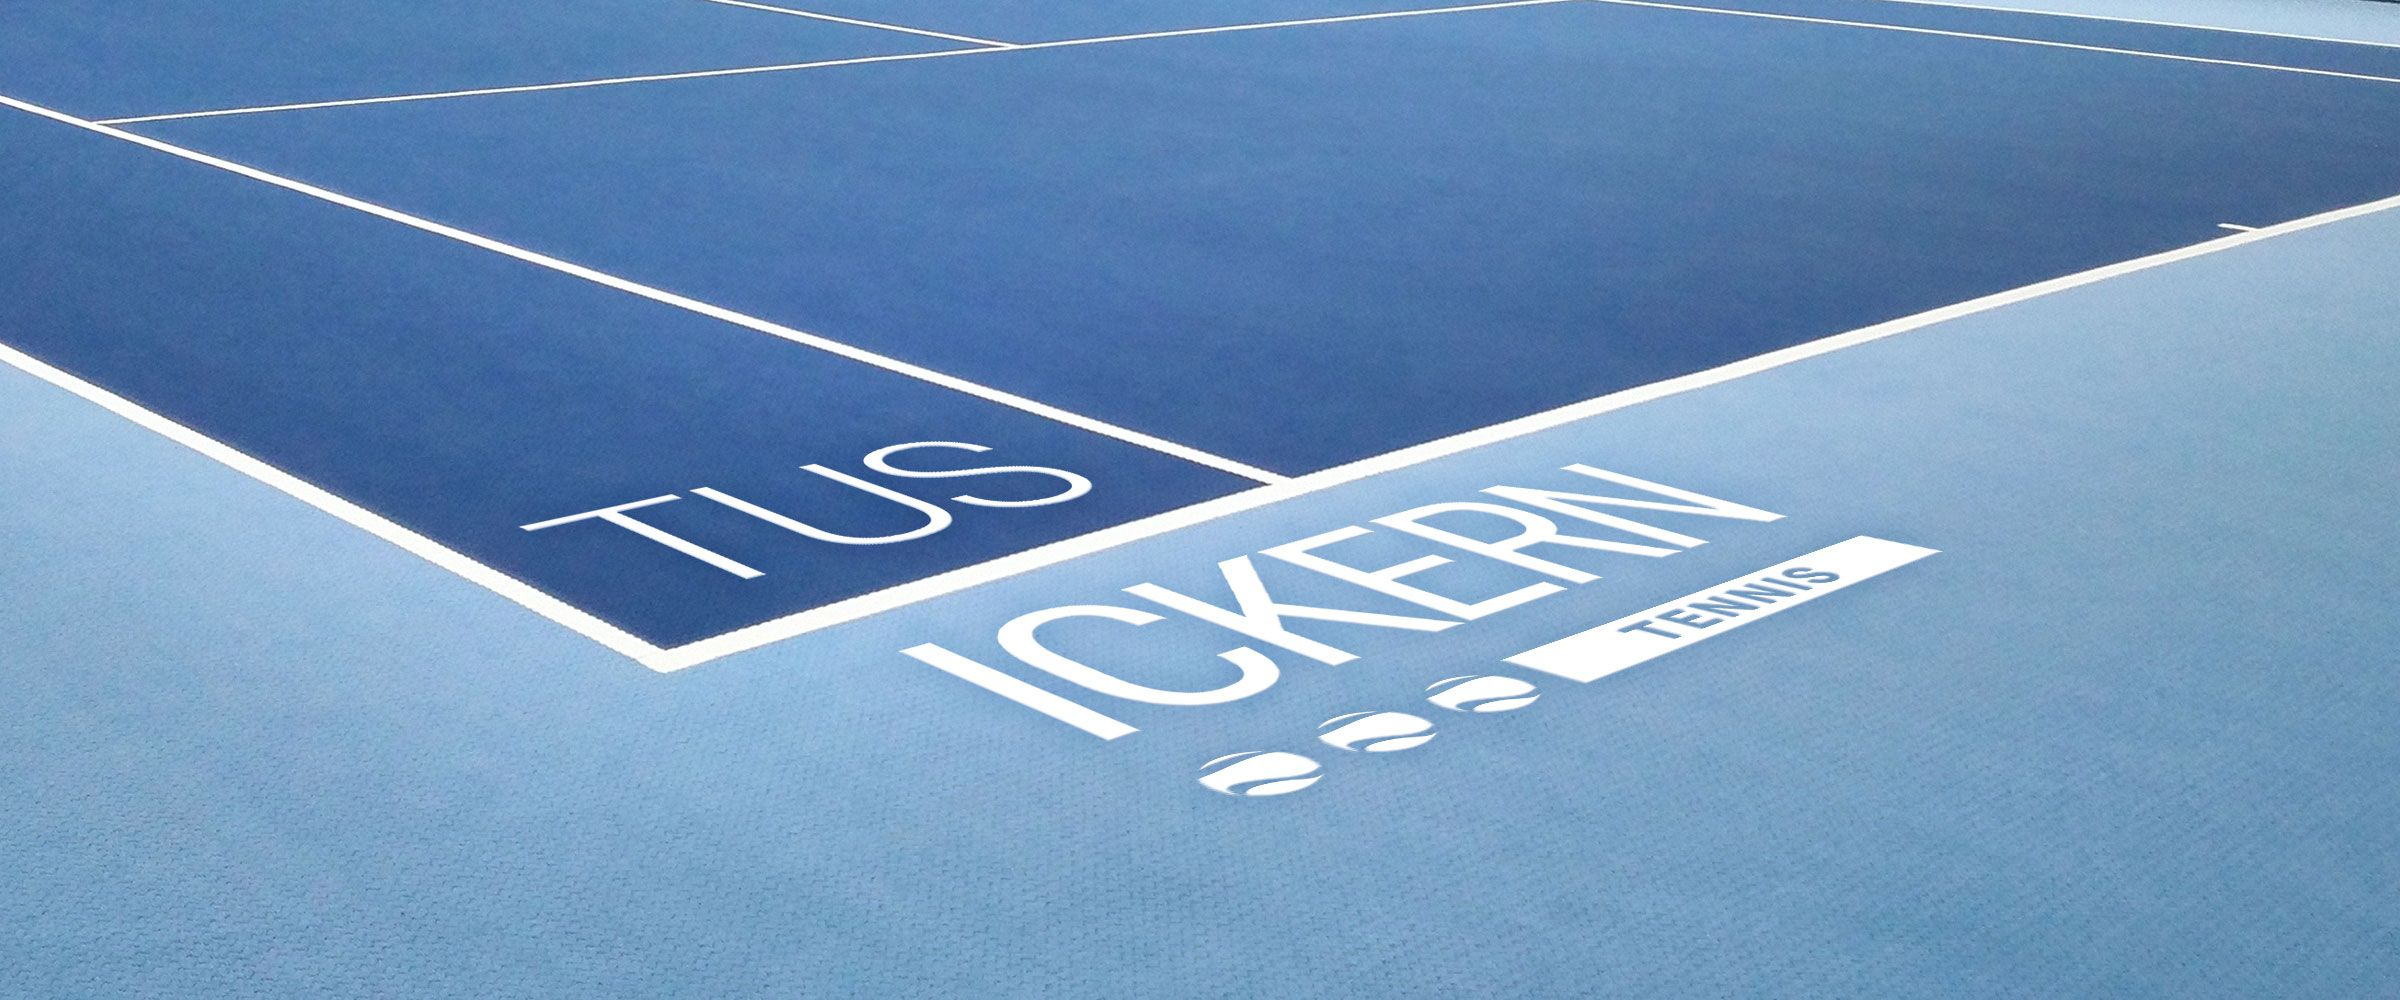 Foto: Komposing Center-Court mit Logo TUS ICKERN